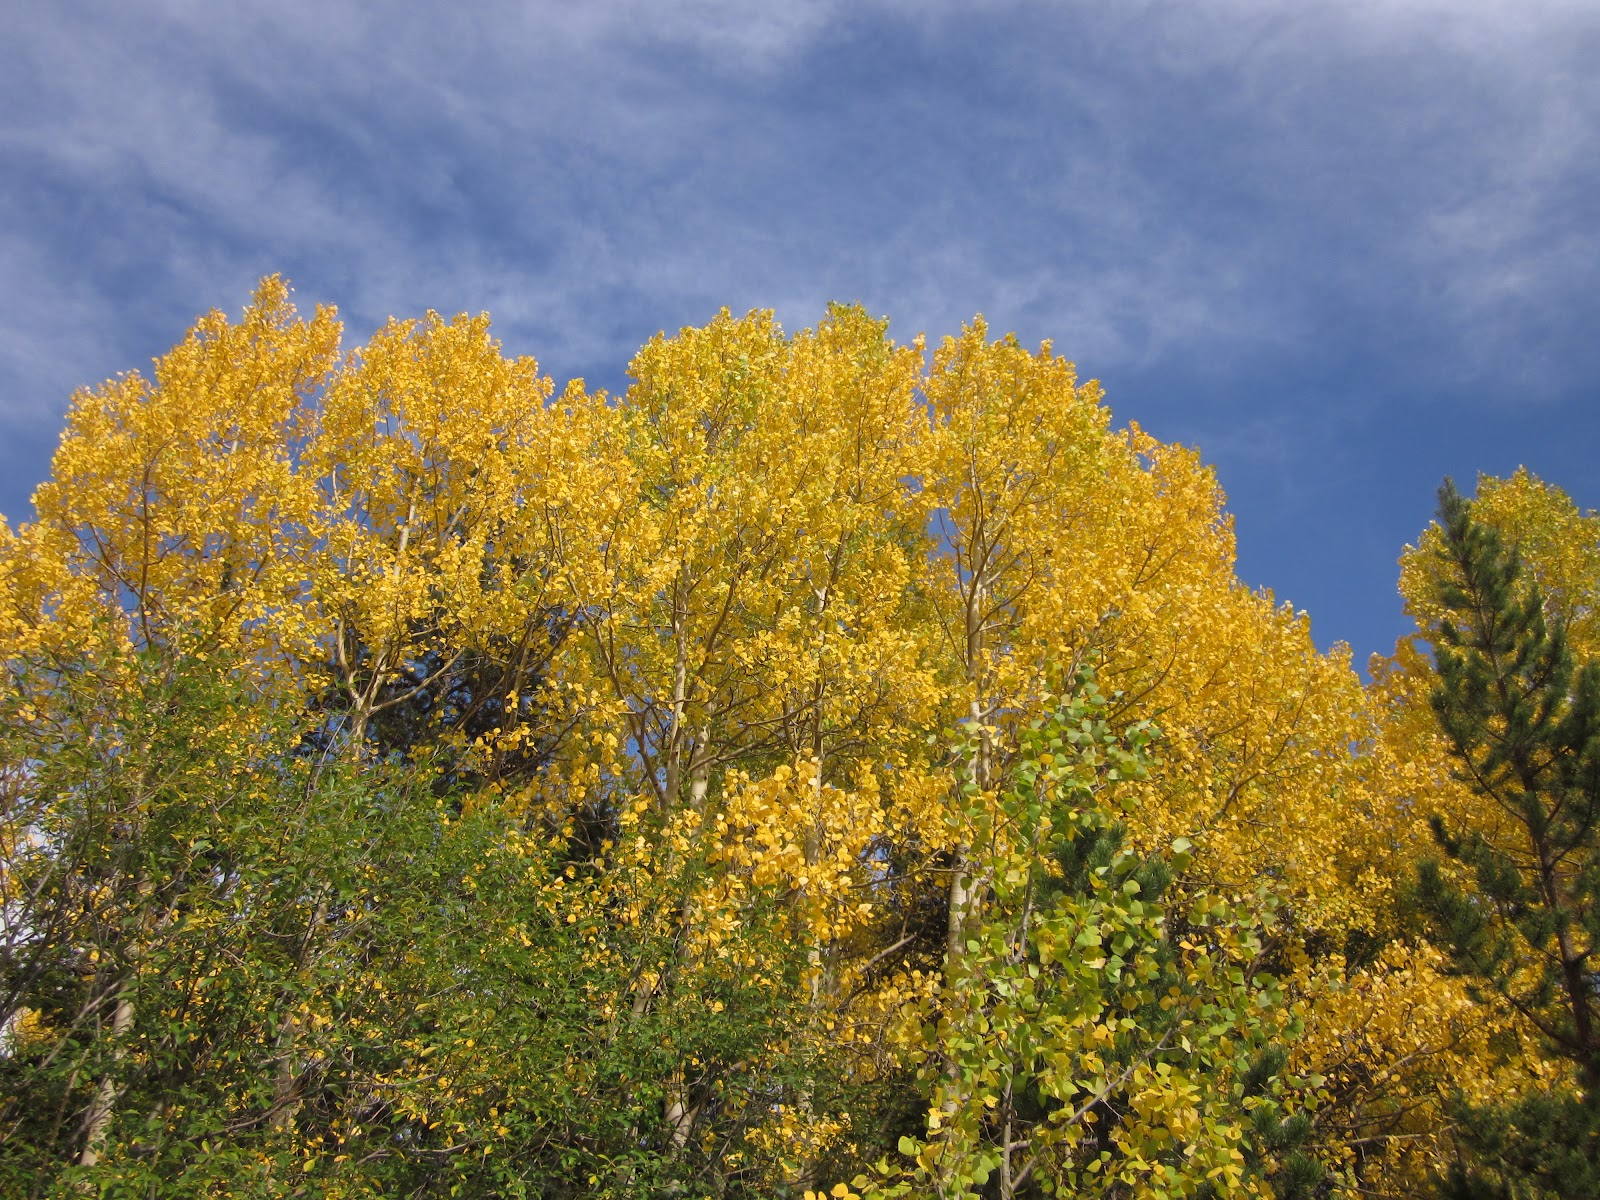 The Land of Melting Shadows: Anatomy of an Aspen Tree